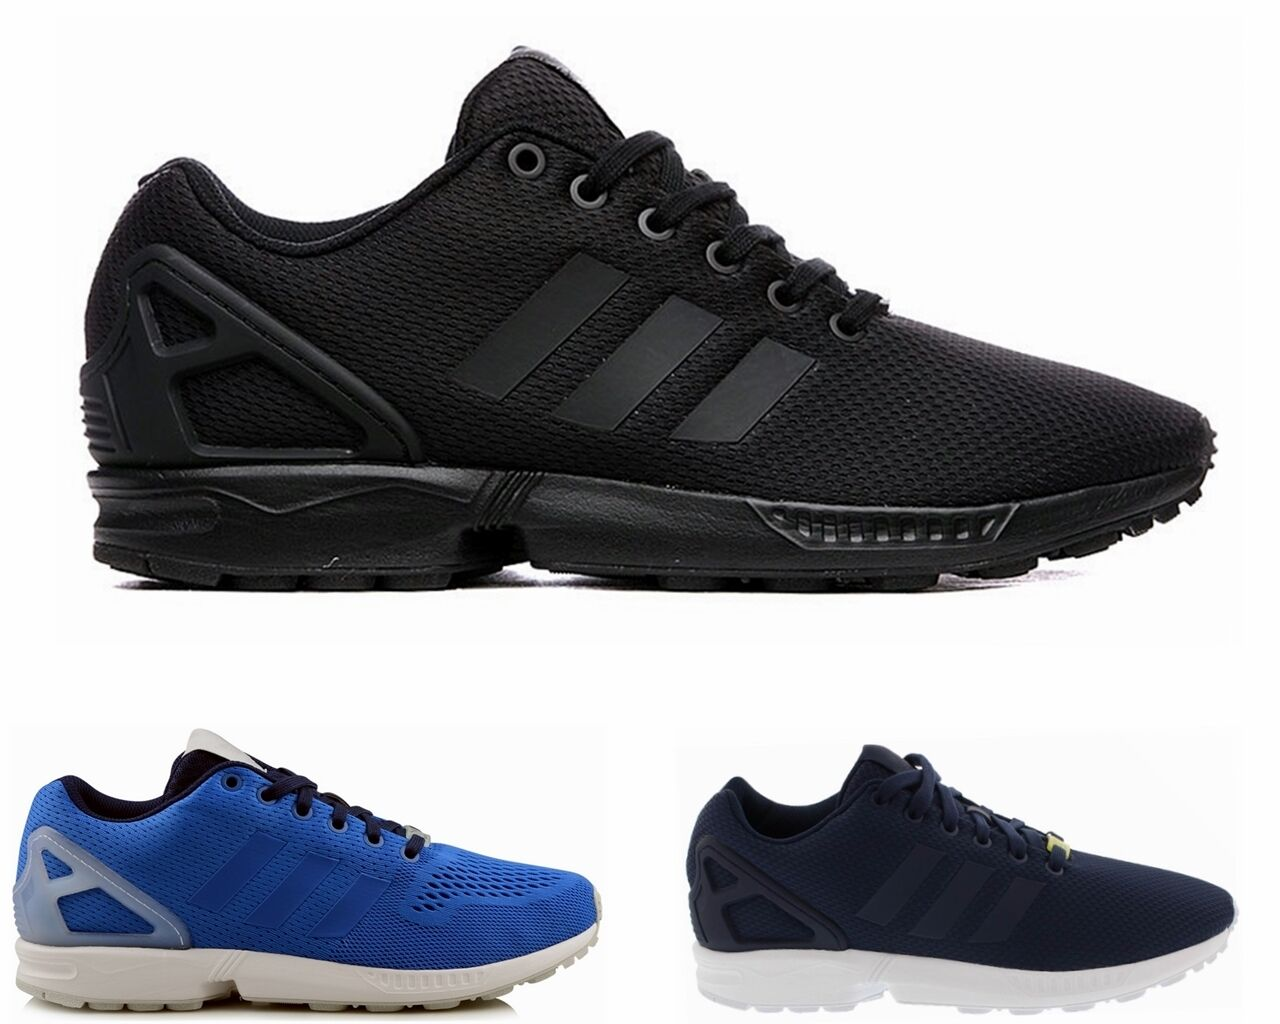 wholesale dealer d52aa 9933a MENS ADIDAS ORIGINALS ZX FLUX BLACK BLUE TRAINERS SIZES UK 6 - 11 30%OFF